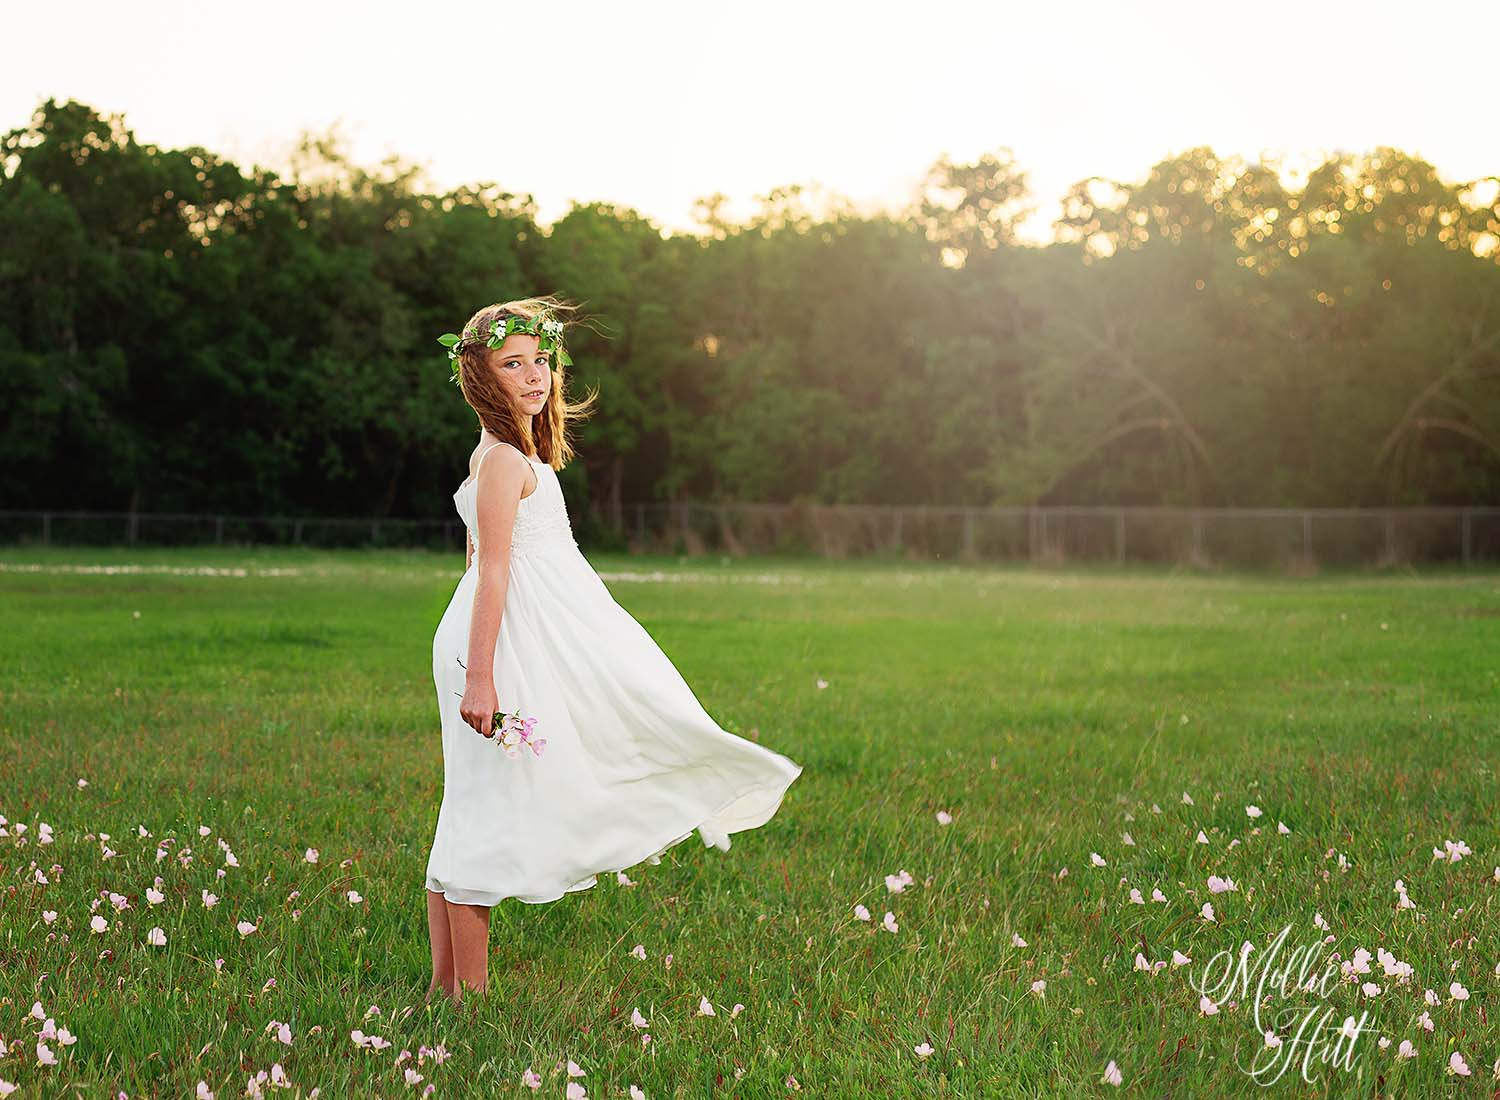 Girl with floral crown in a windblown white dress